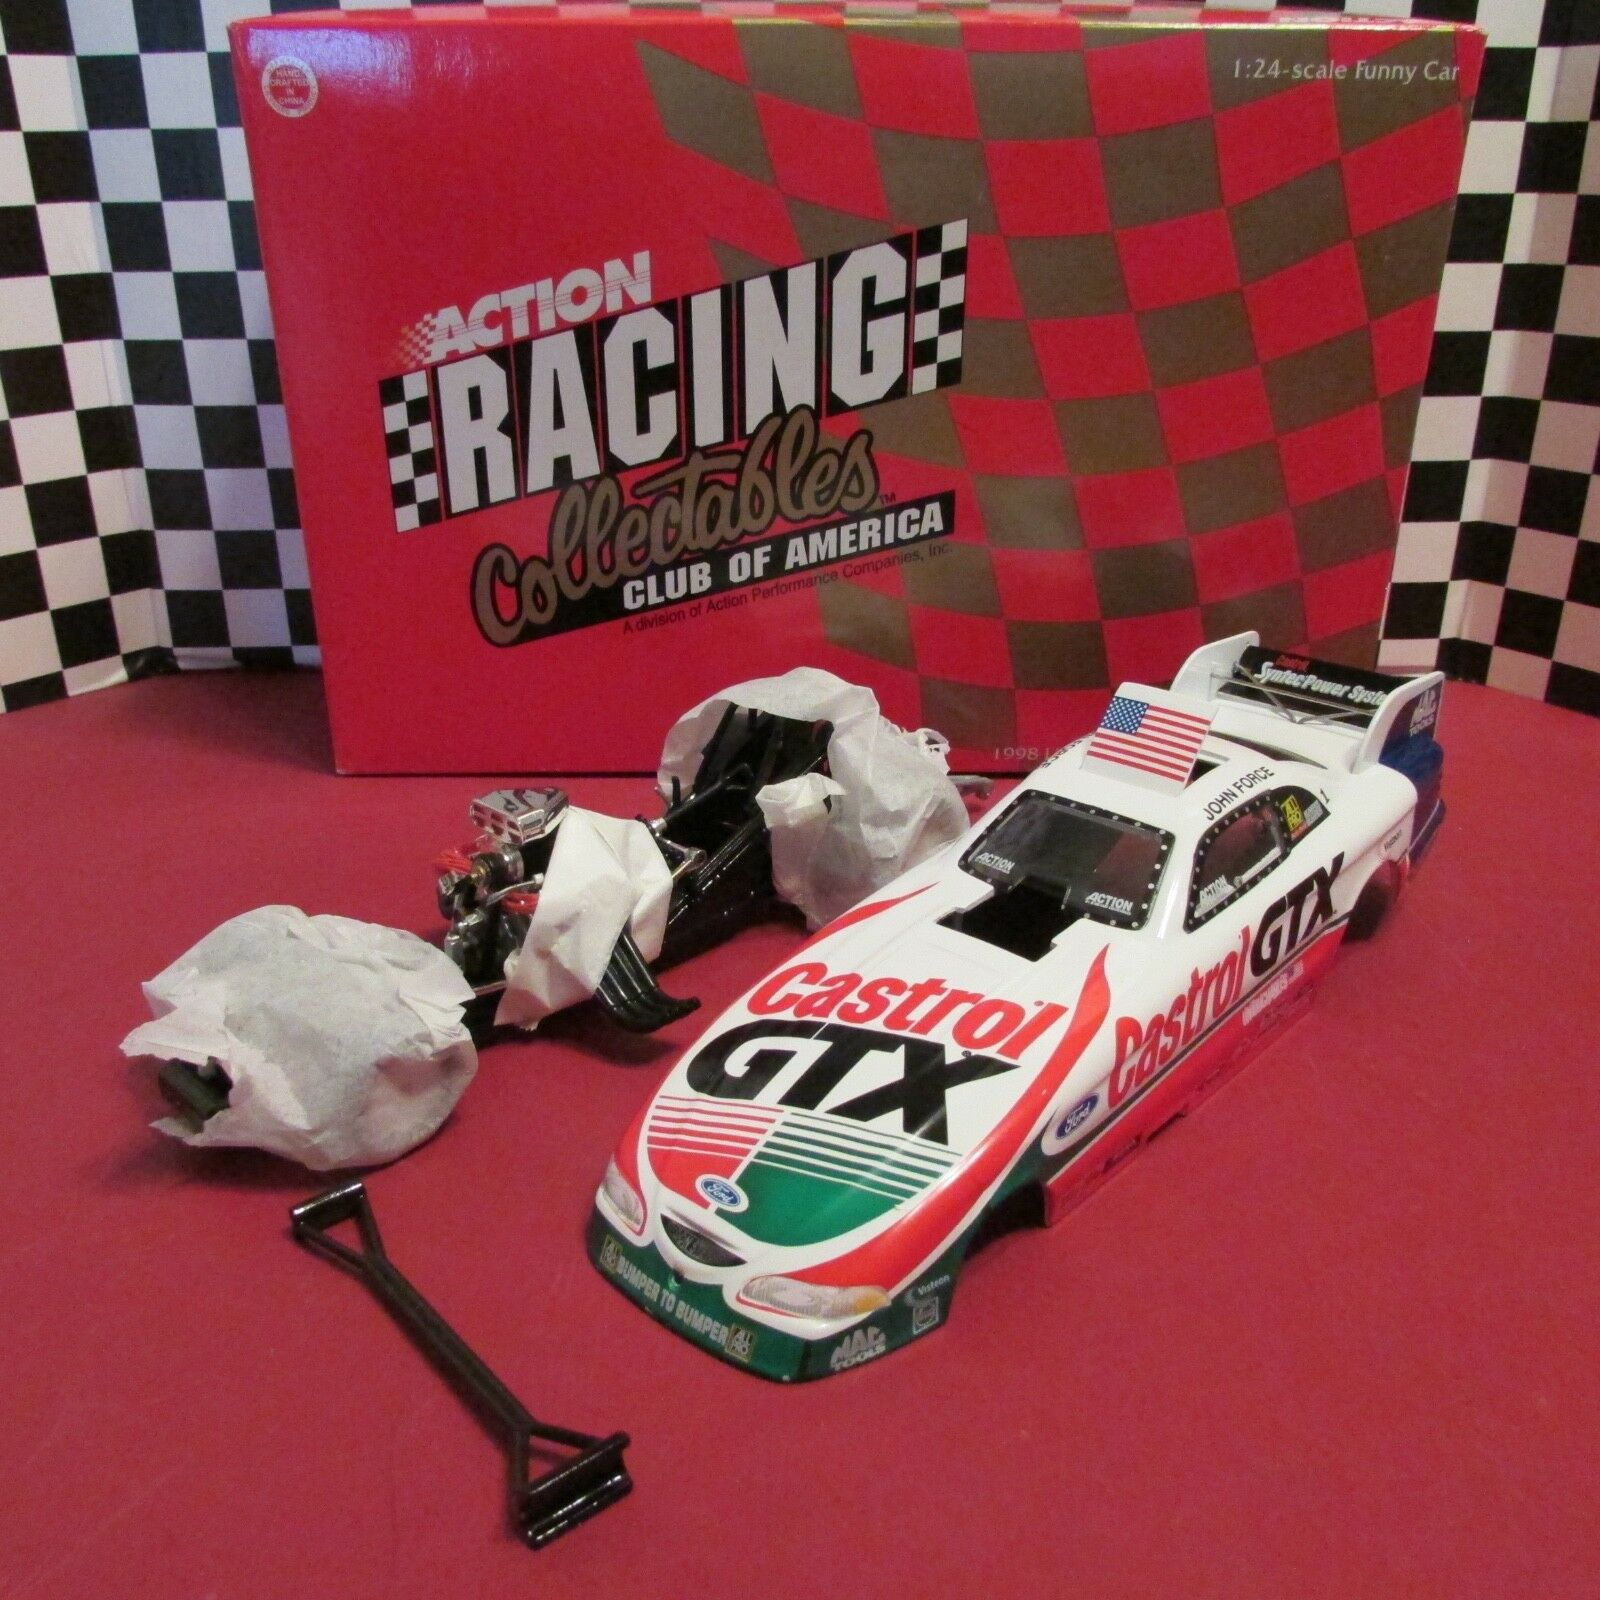 NHRA,1998 Ford Mustang Funny Car,1:24 scale, Castrol,John Force, LE,1/2500